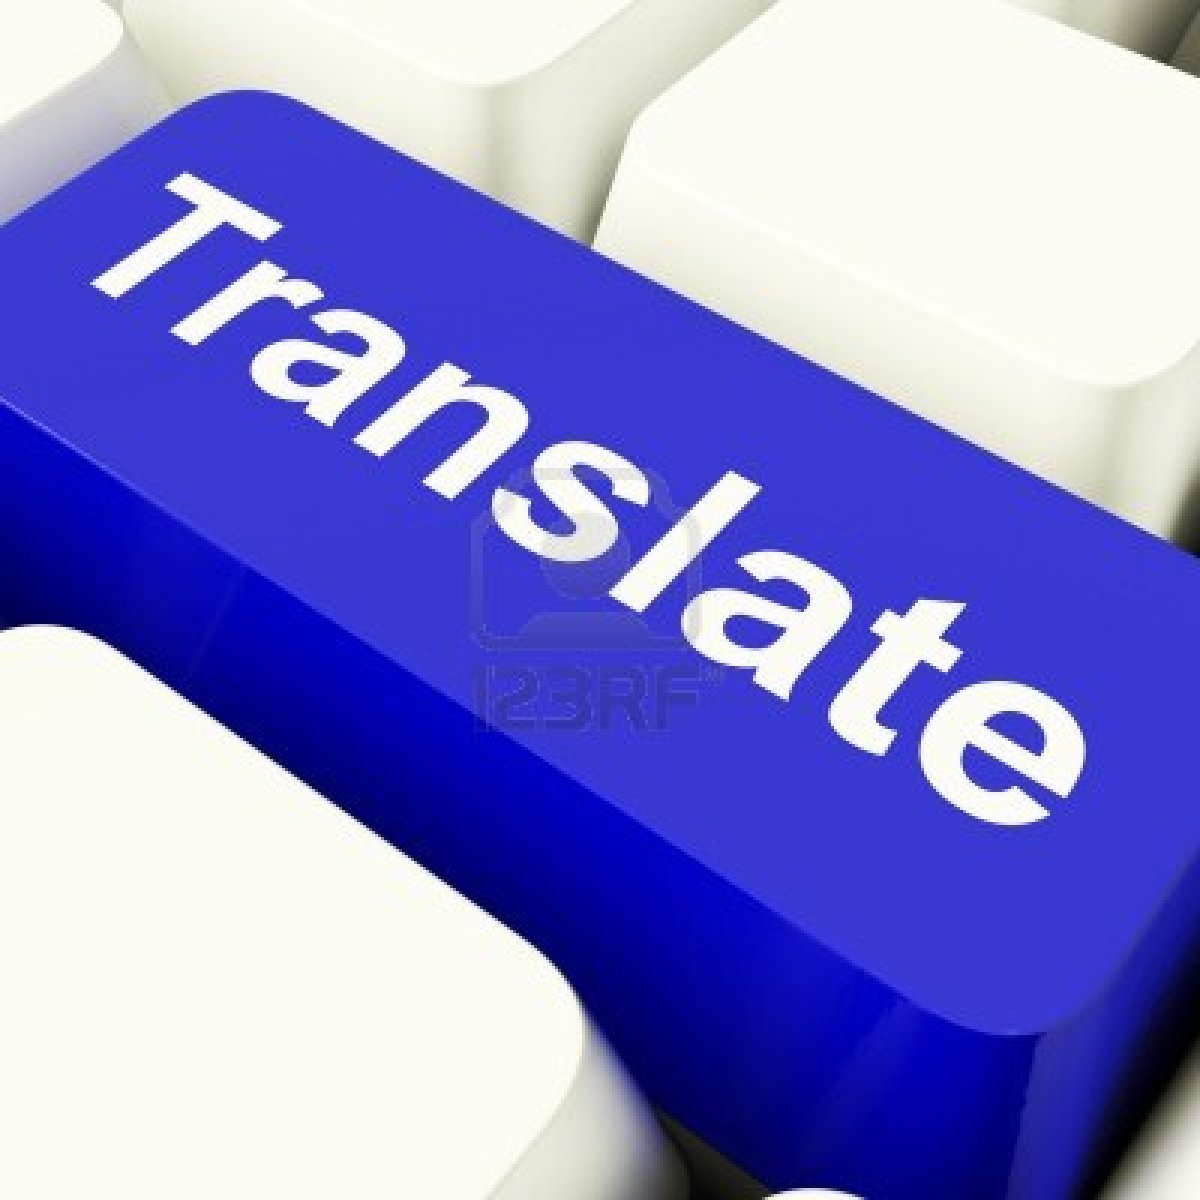 Translate - I Will Translate Any English Article Into French German Or Spanish